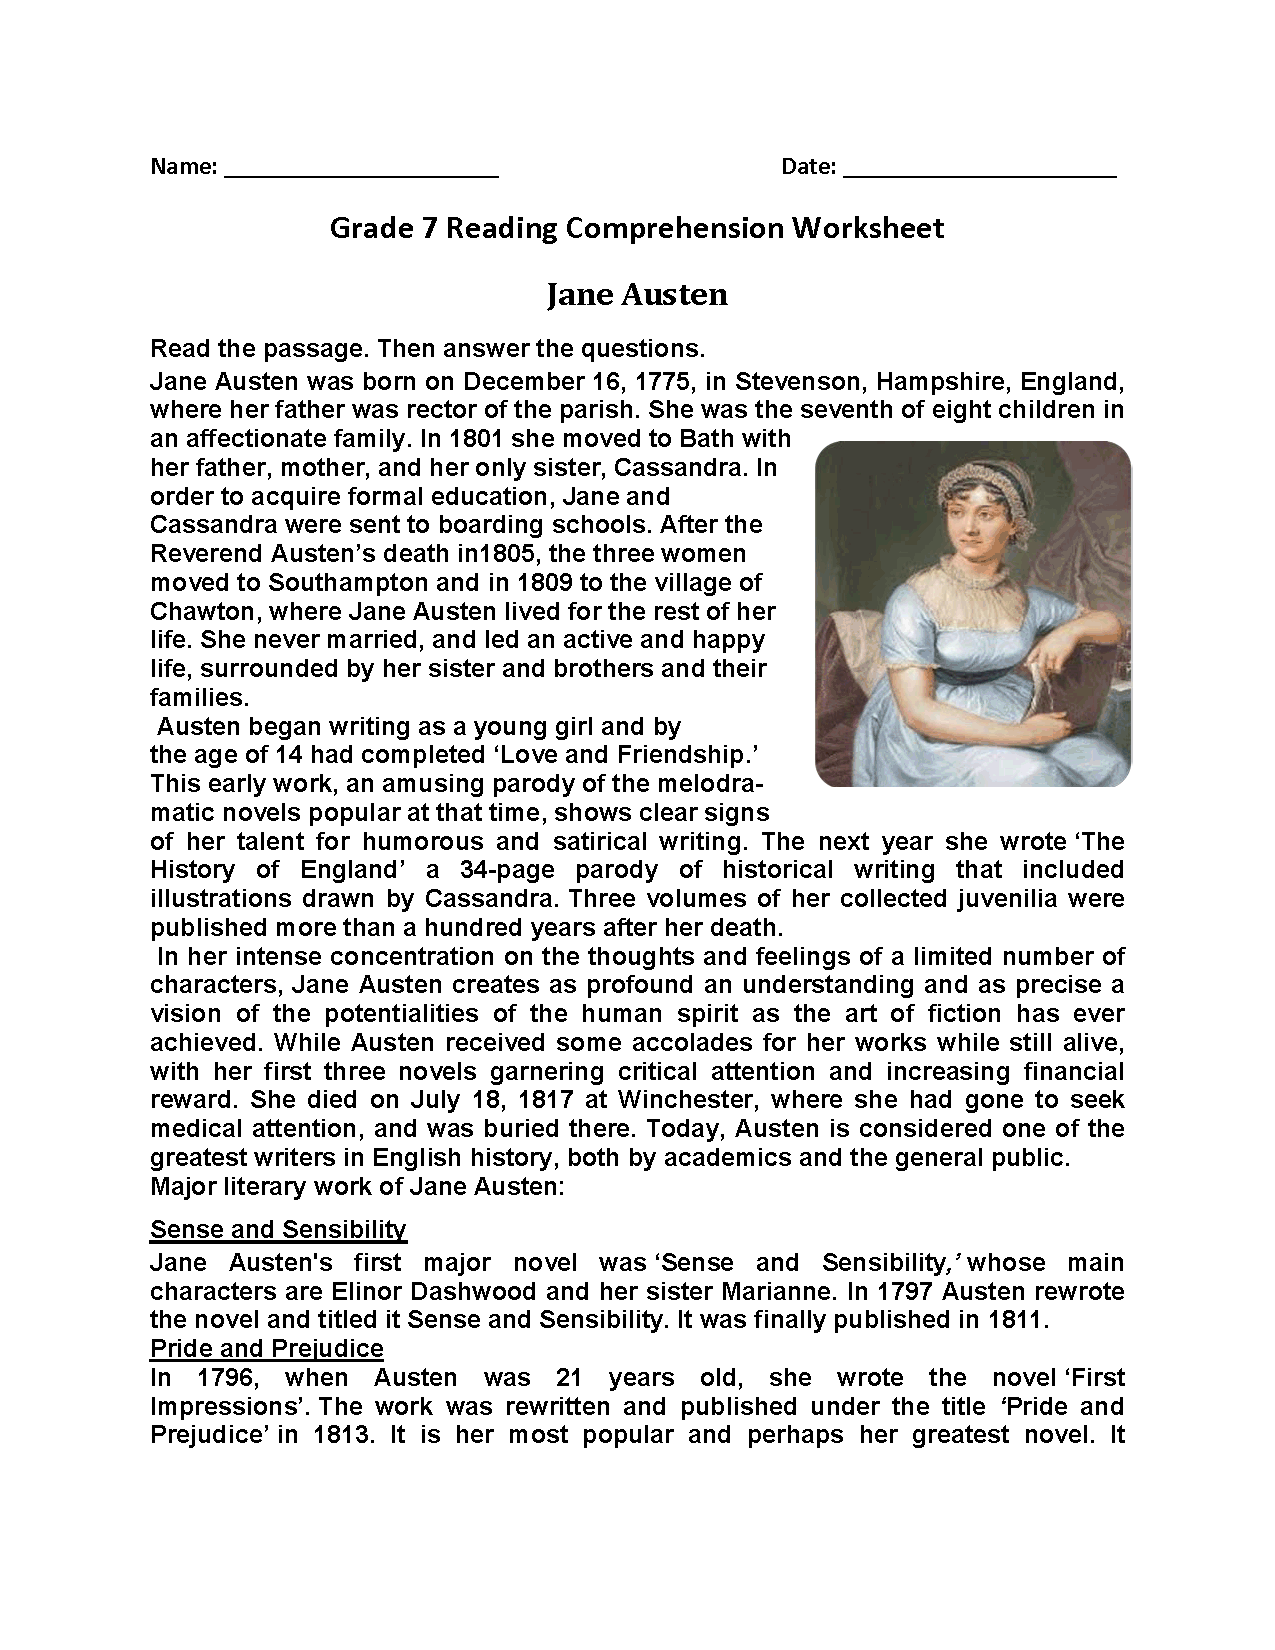 7th Grader Grade 7 Reading Comprehension Worksheets